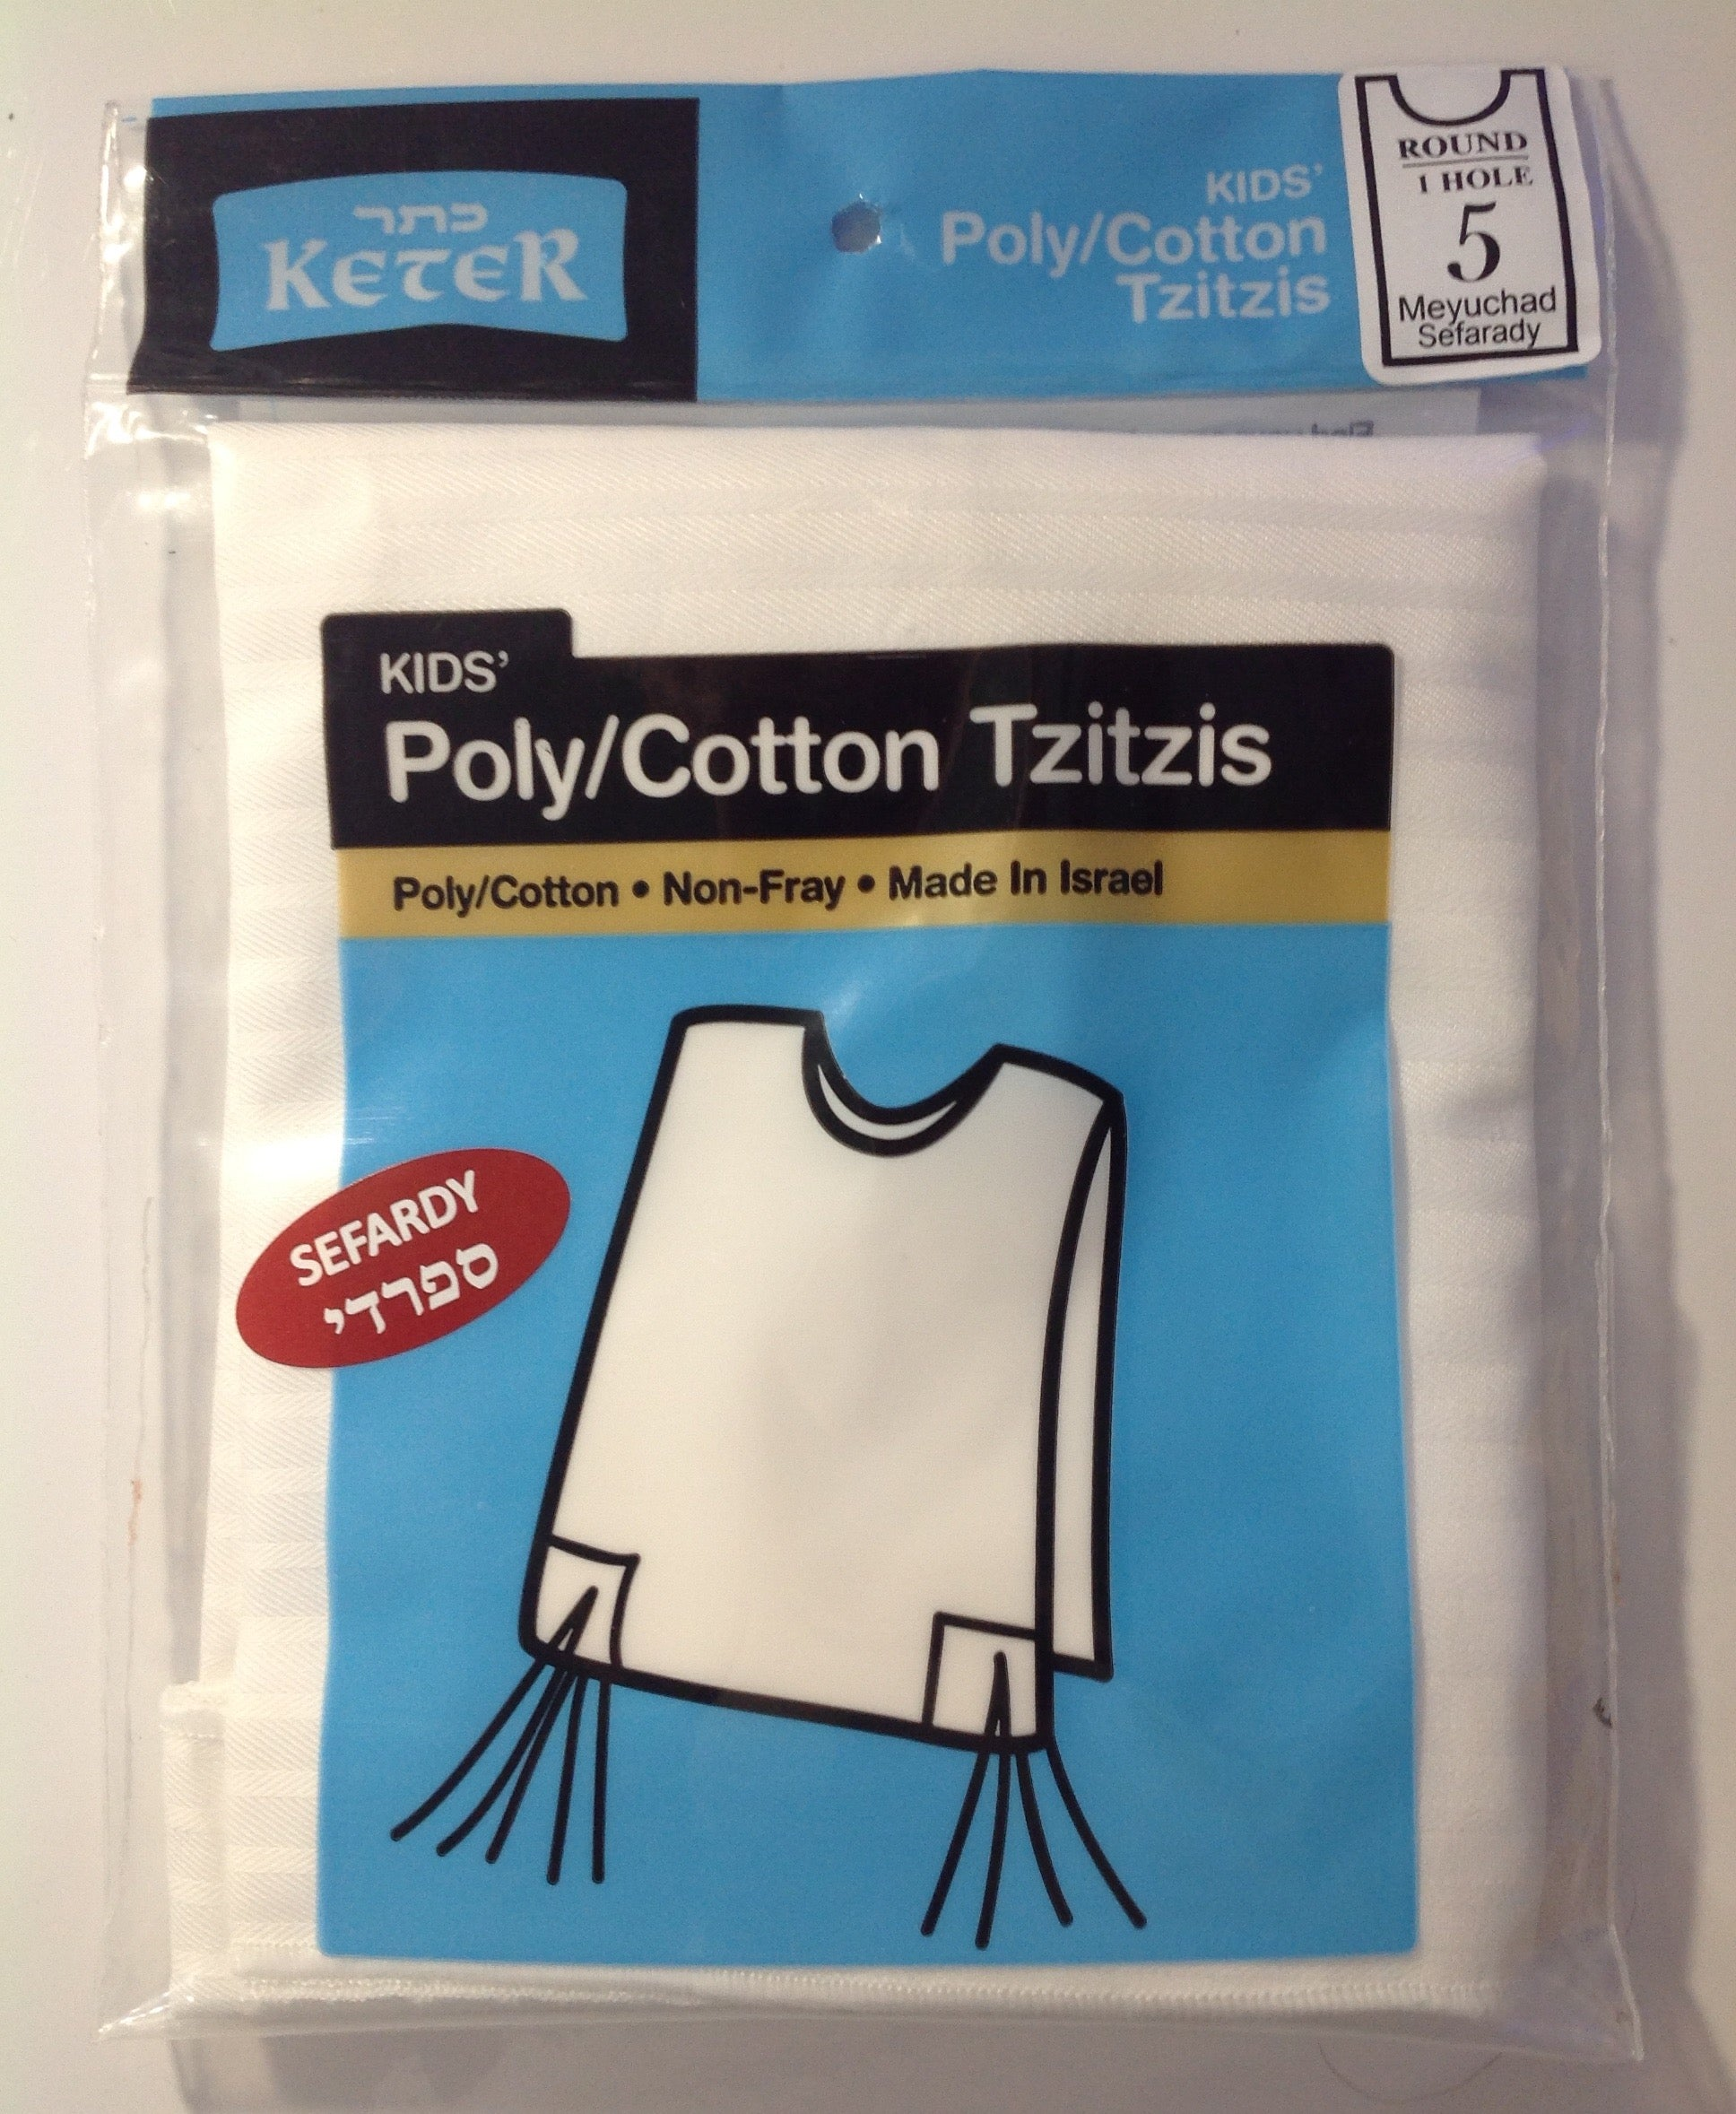 Kids Poly Cotton Tzitzis, Sefardi